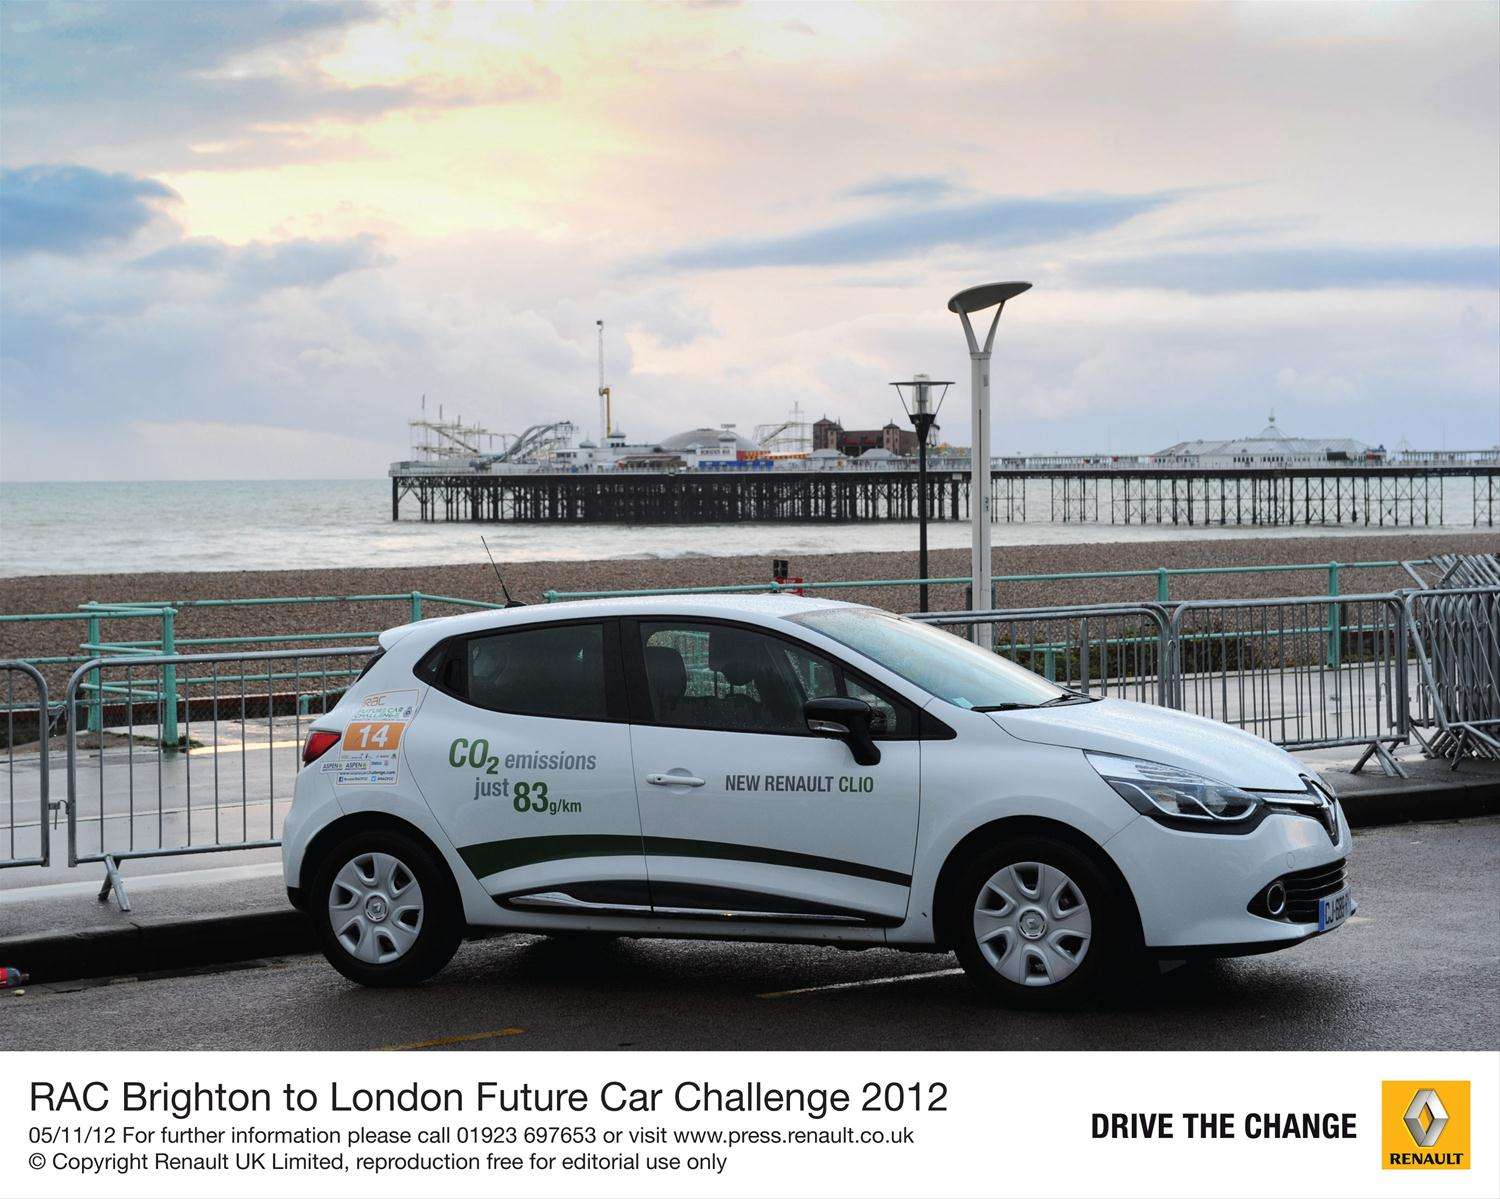 Renault Clio in Future Car Challenge